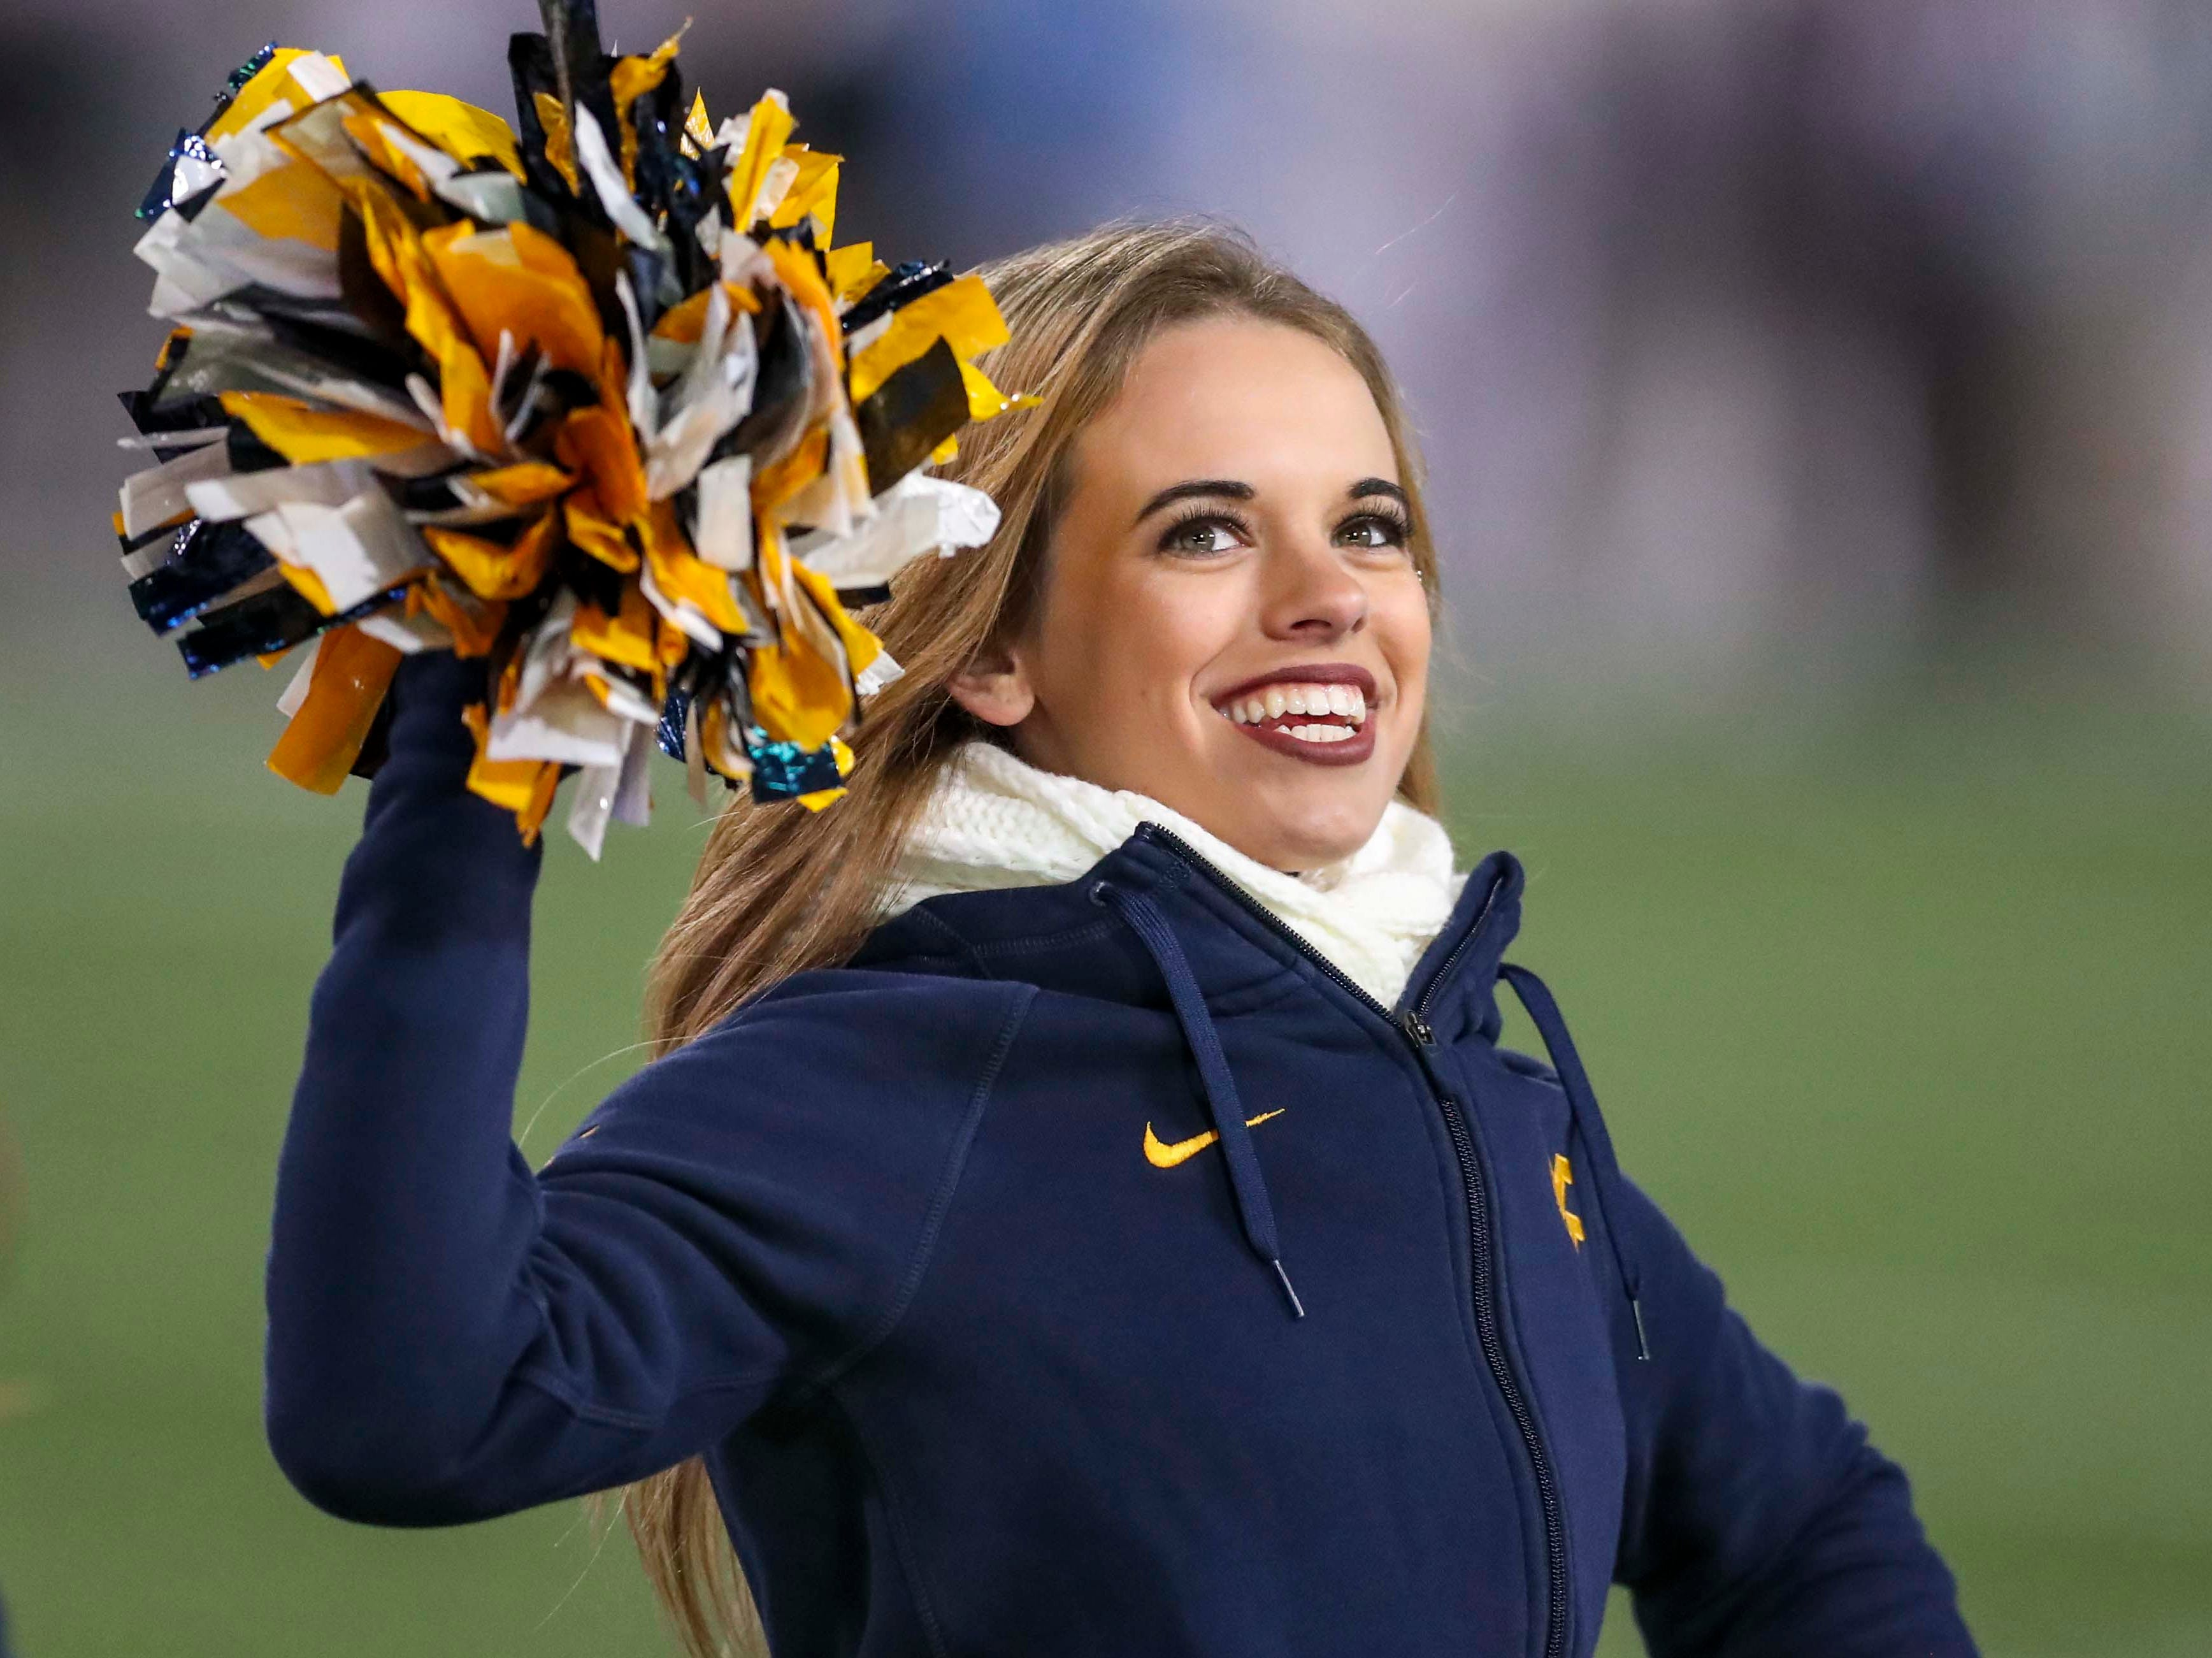 Week 9: A West Virginia Mountaineers cheerleader performs during the third quarter against the Baylor Bears at Mountaineer Field at Milan Puskar Stadium.